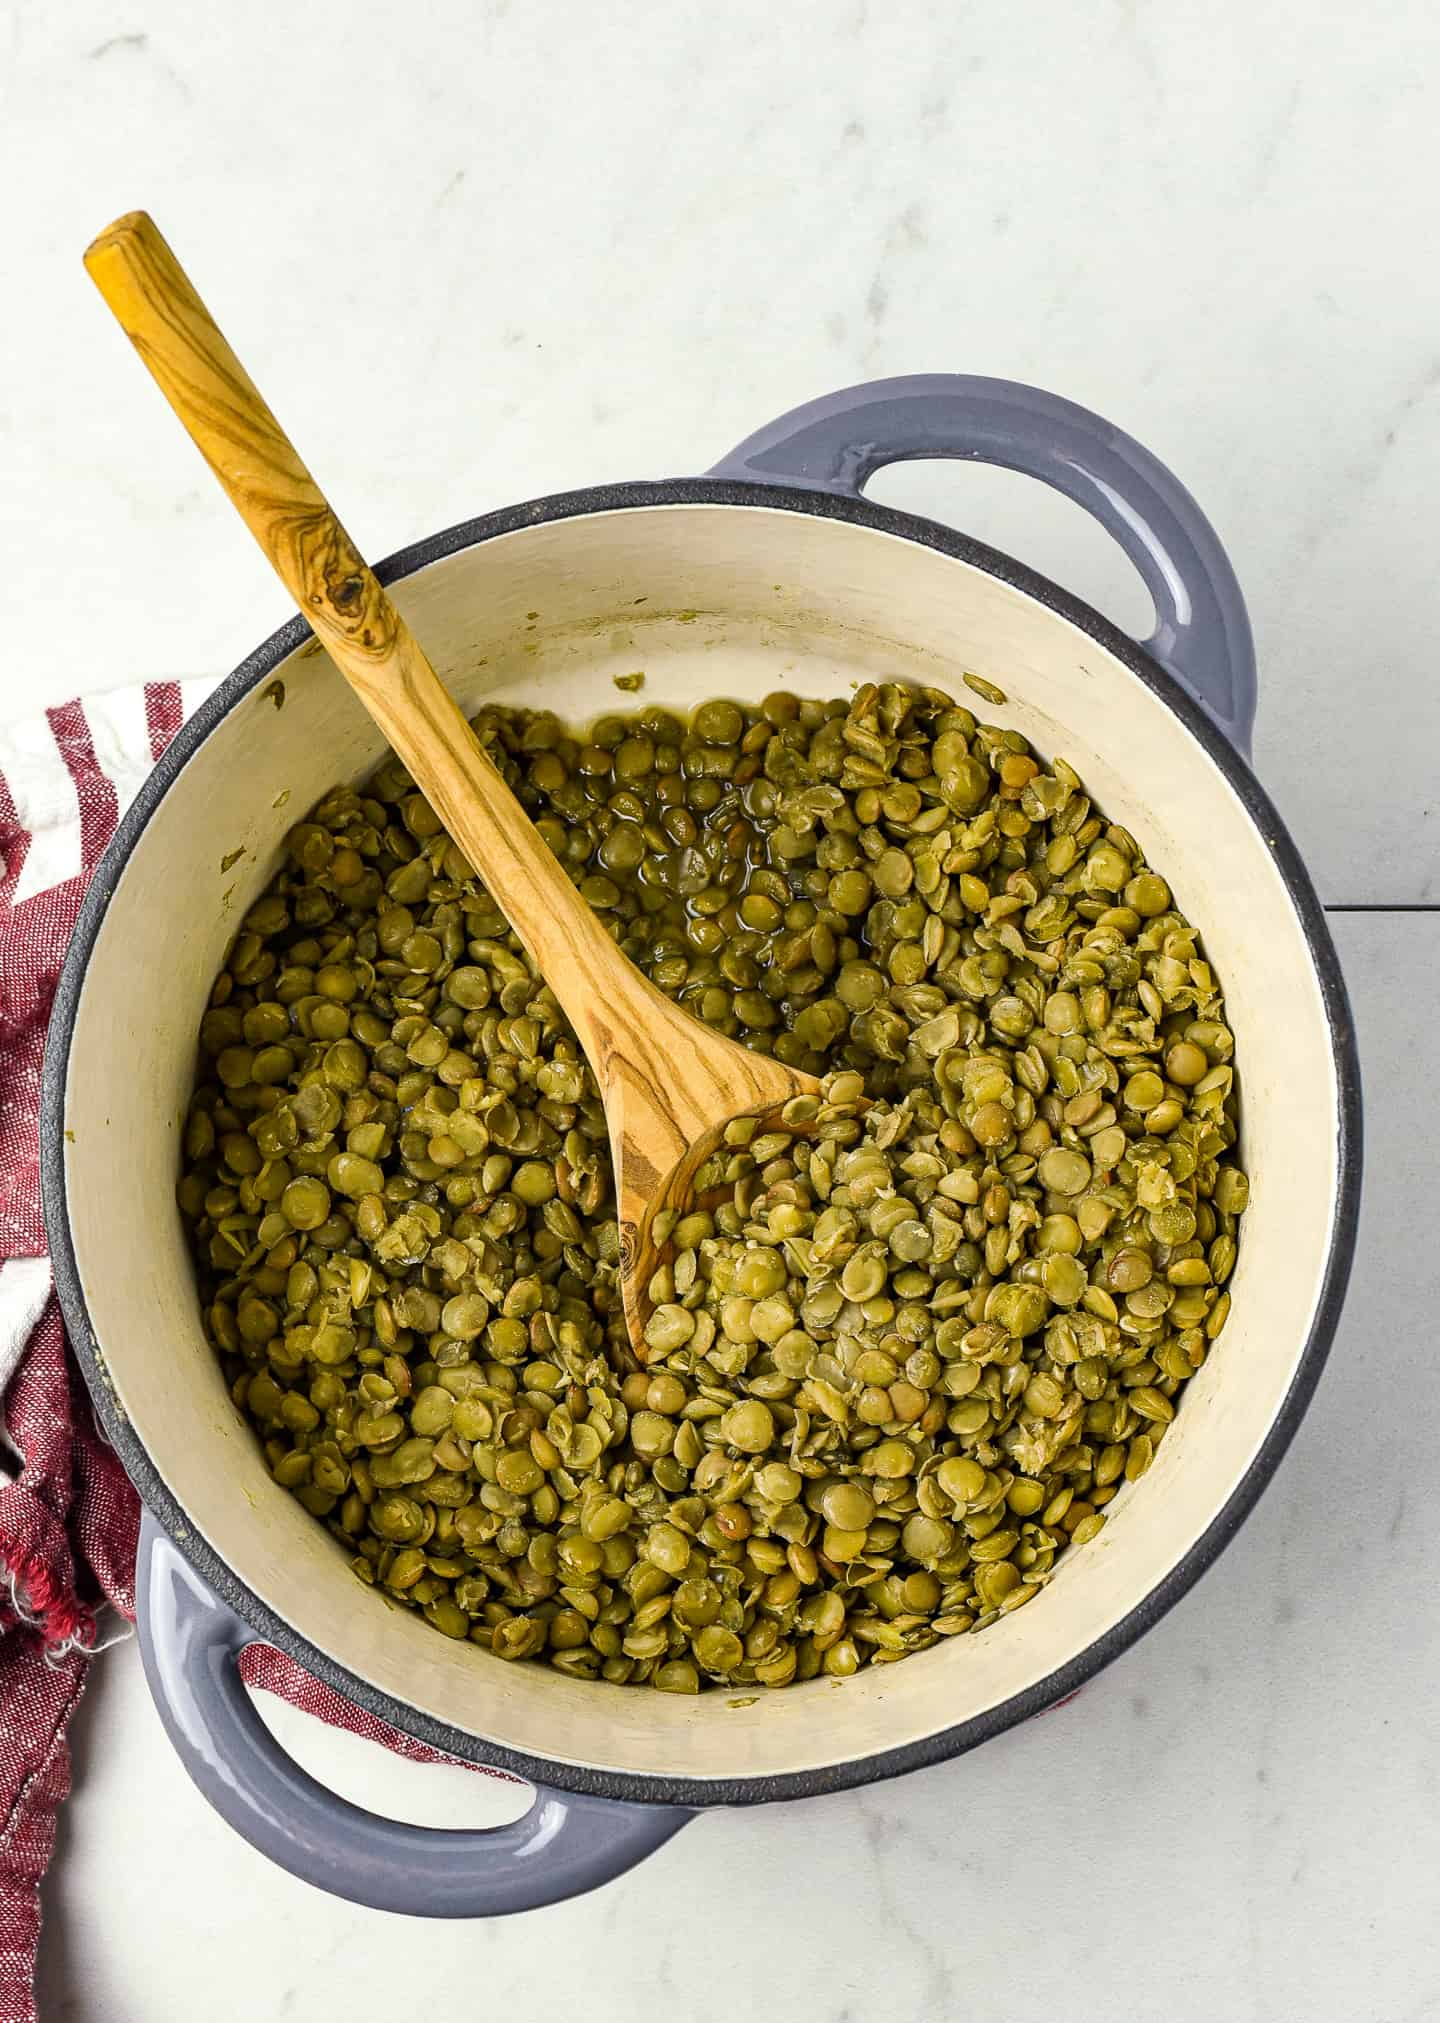 How to cook lentils perfectly every time! Lentils are so easy to make, inexpensive, delicious, and packed with protein and fiber. They're the perfect addition to salads, side dishes, and more.